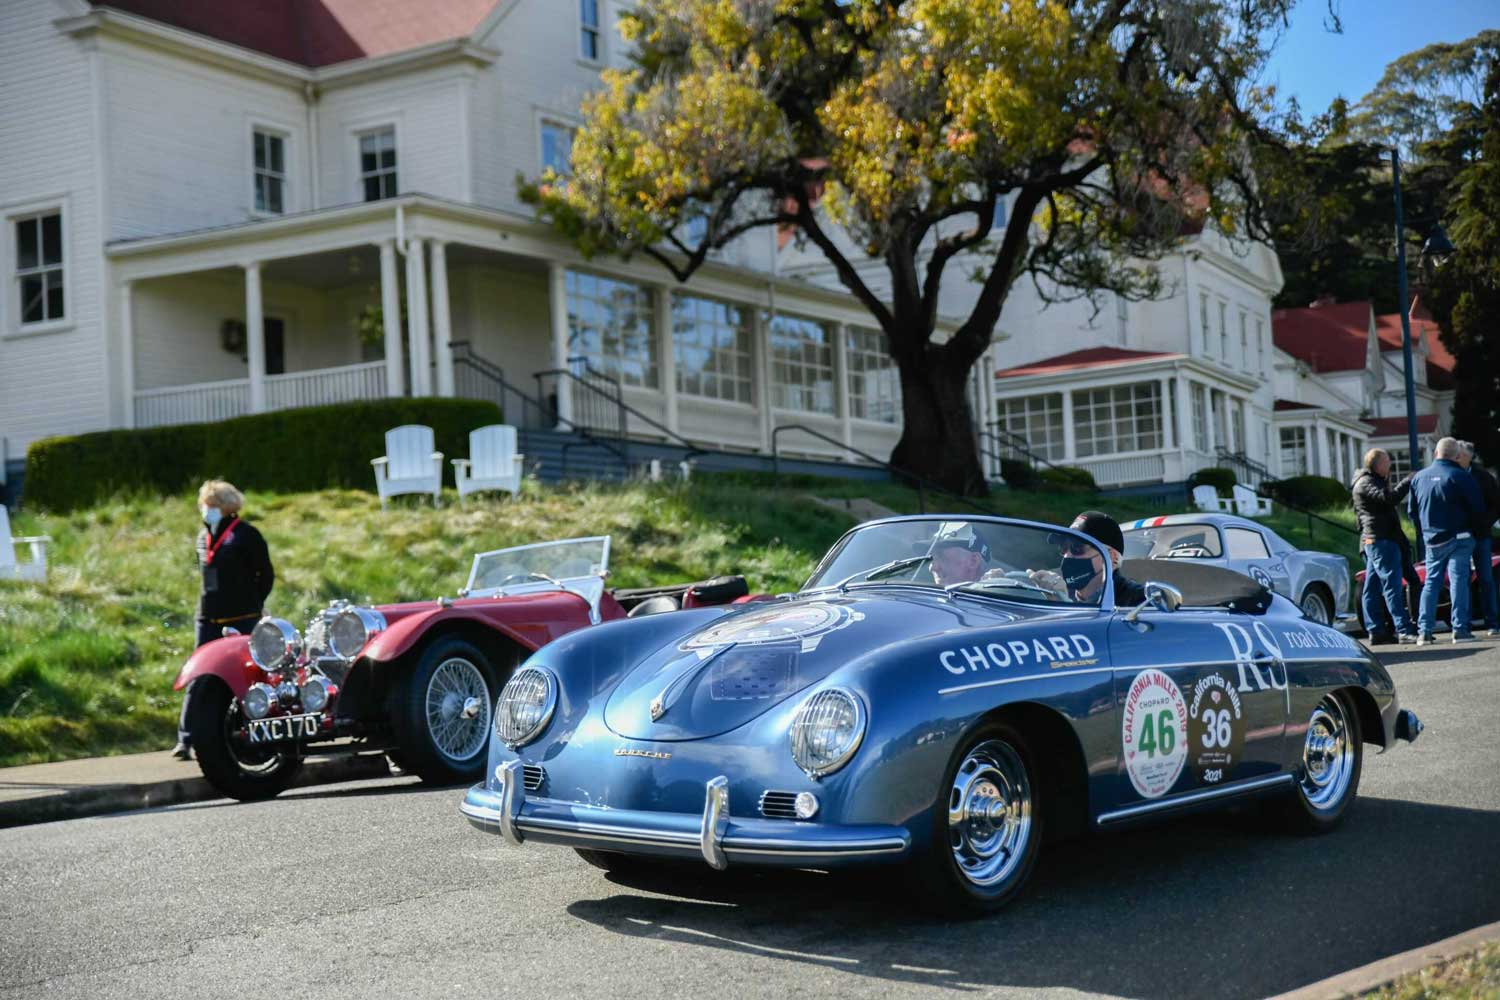 Road Scholars and Ingram Collection 1957 356A Speedster sponsored by Chopard (Image: Hagerty)